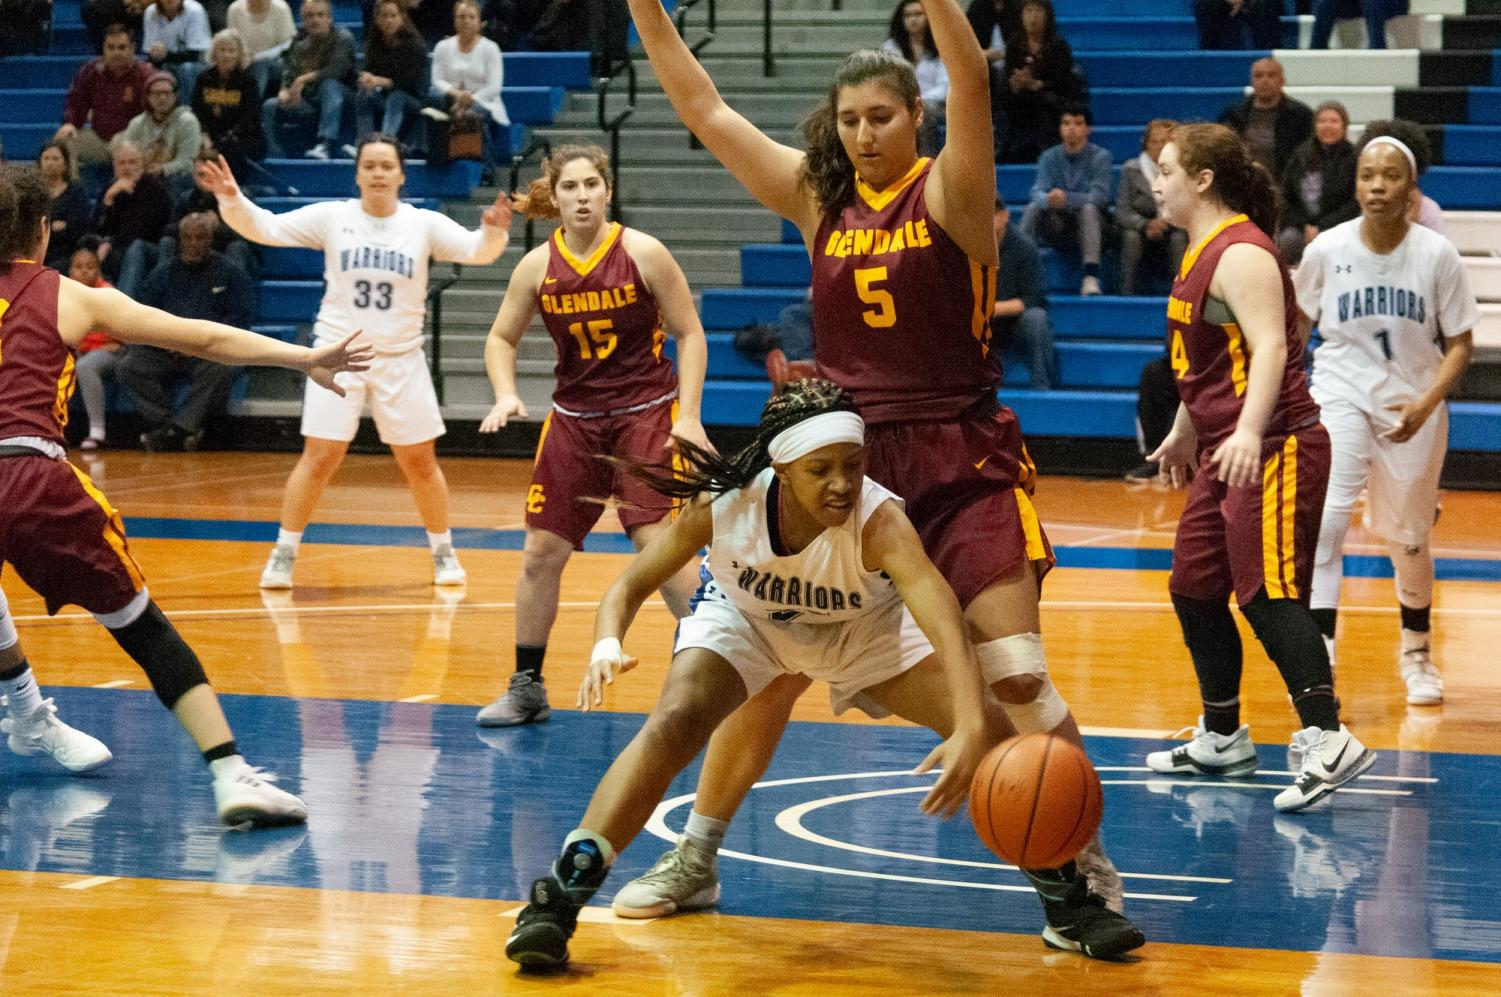 Alexia Mason (No. 21) of the women's basketball team keeps possession alive for the Warriors during their playoff game versus Glendale on Friday, March 1 at the ECC North Gym. Photo credit: Elena Perez